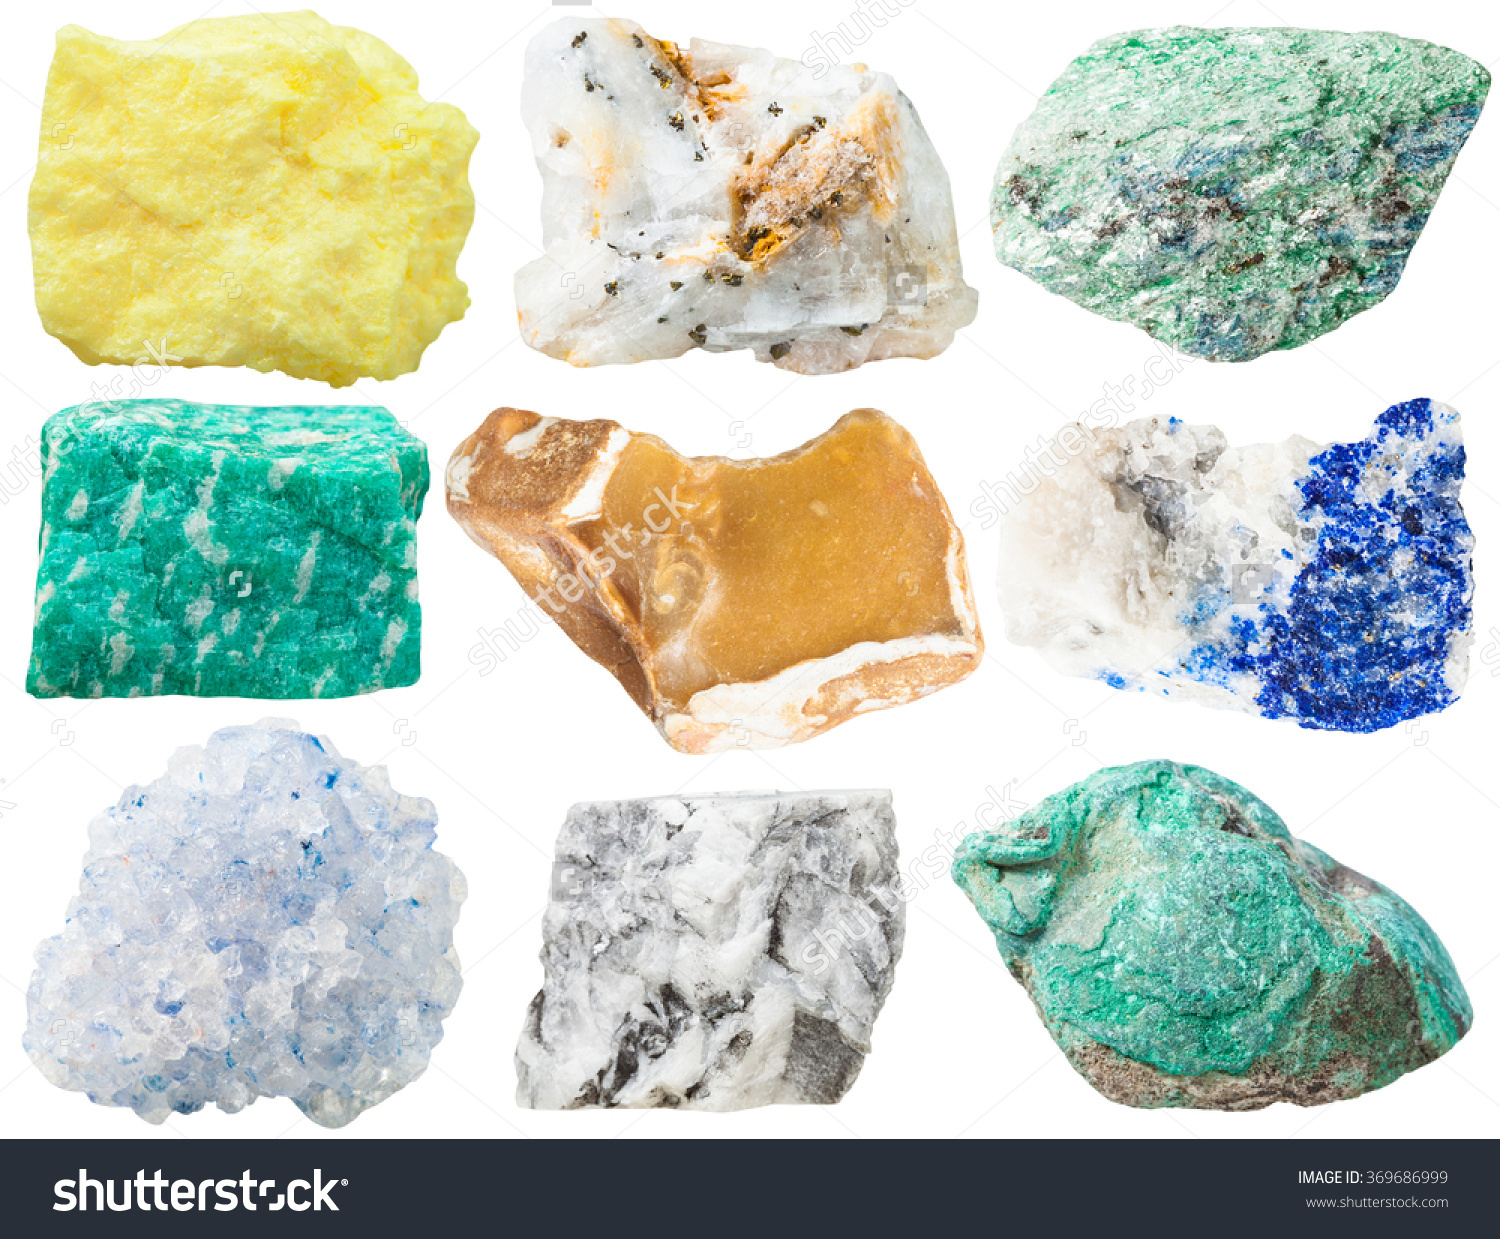 Collection Different Mineral Rocks Stones Sulfur Stock Photo.